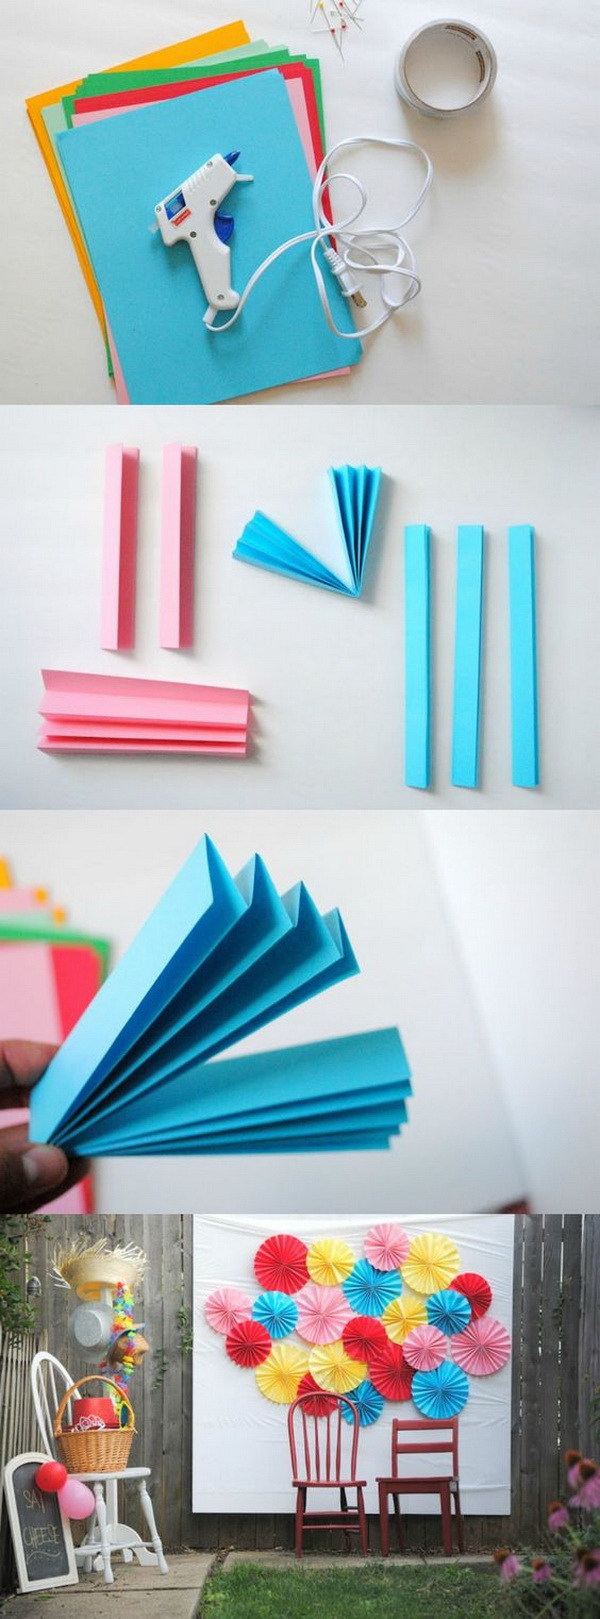 DIY Paper Fan Photo Booth Backdrop. Love the simplicity and pretty colors of this paper fan photo booth backdrop!